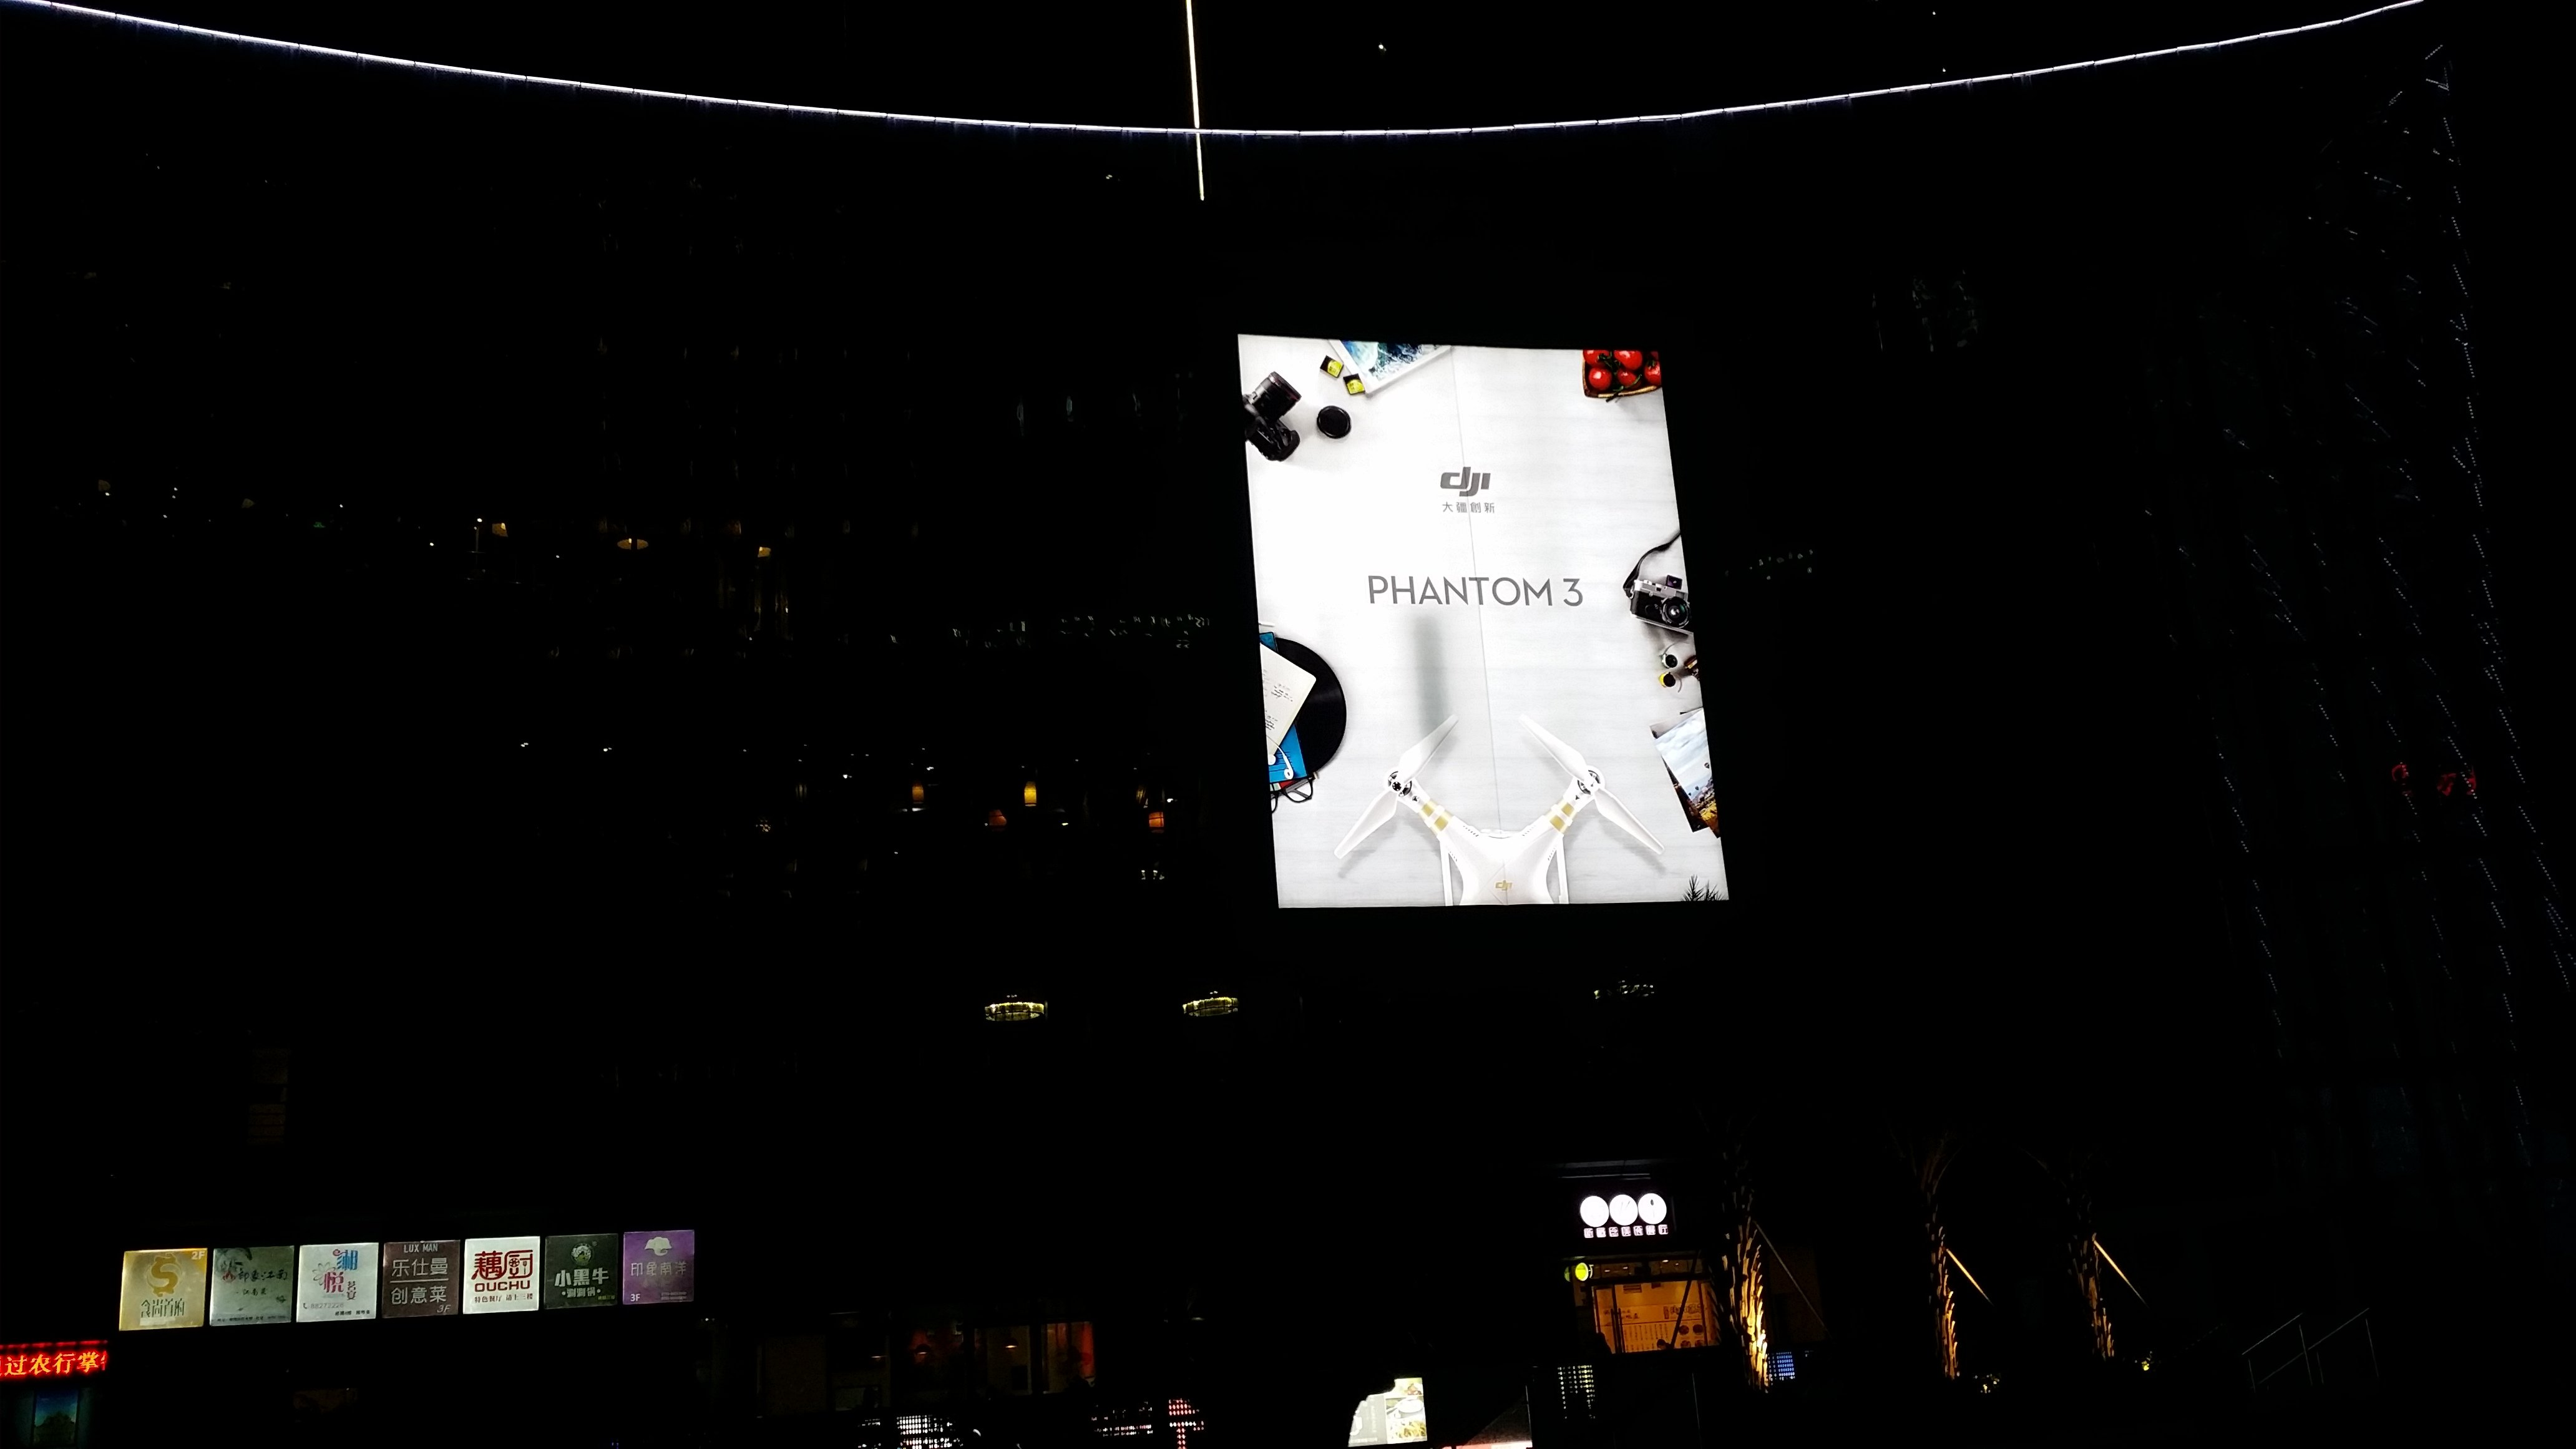 Massive DJI Phantom 3 poster on the other side of DJI's HQ in Shenzhen, China